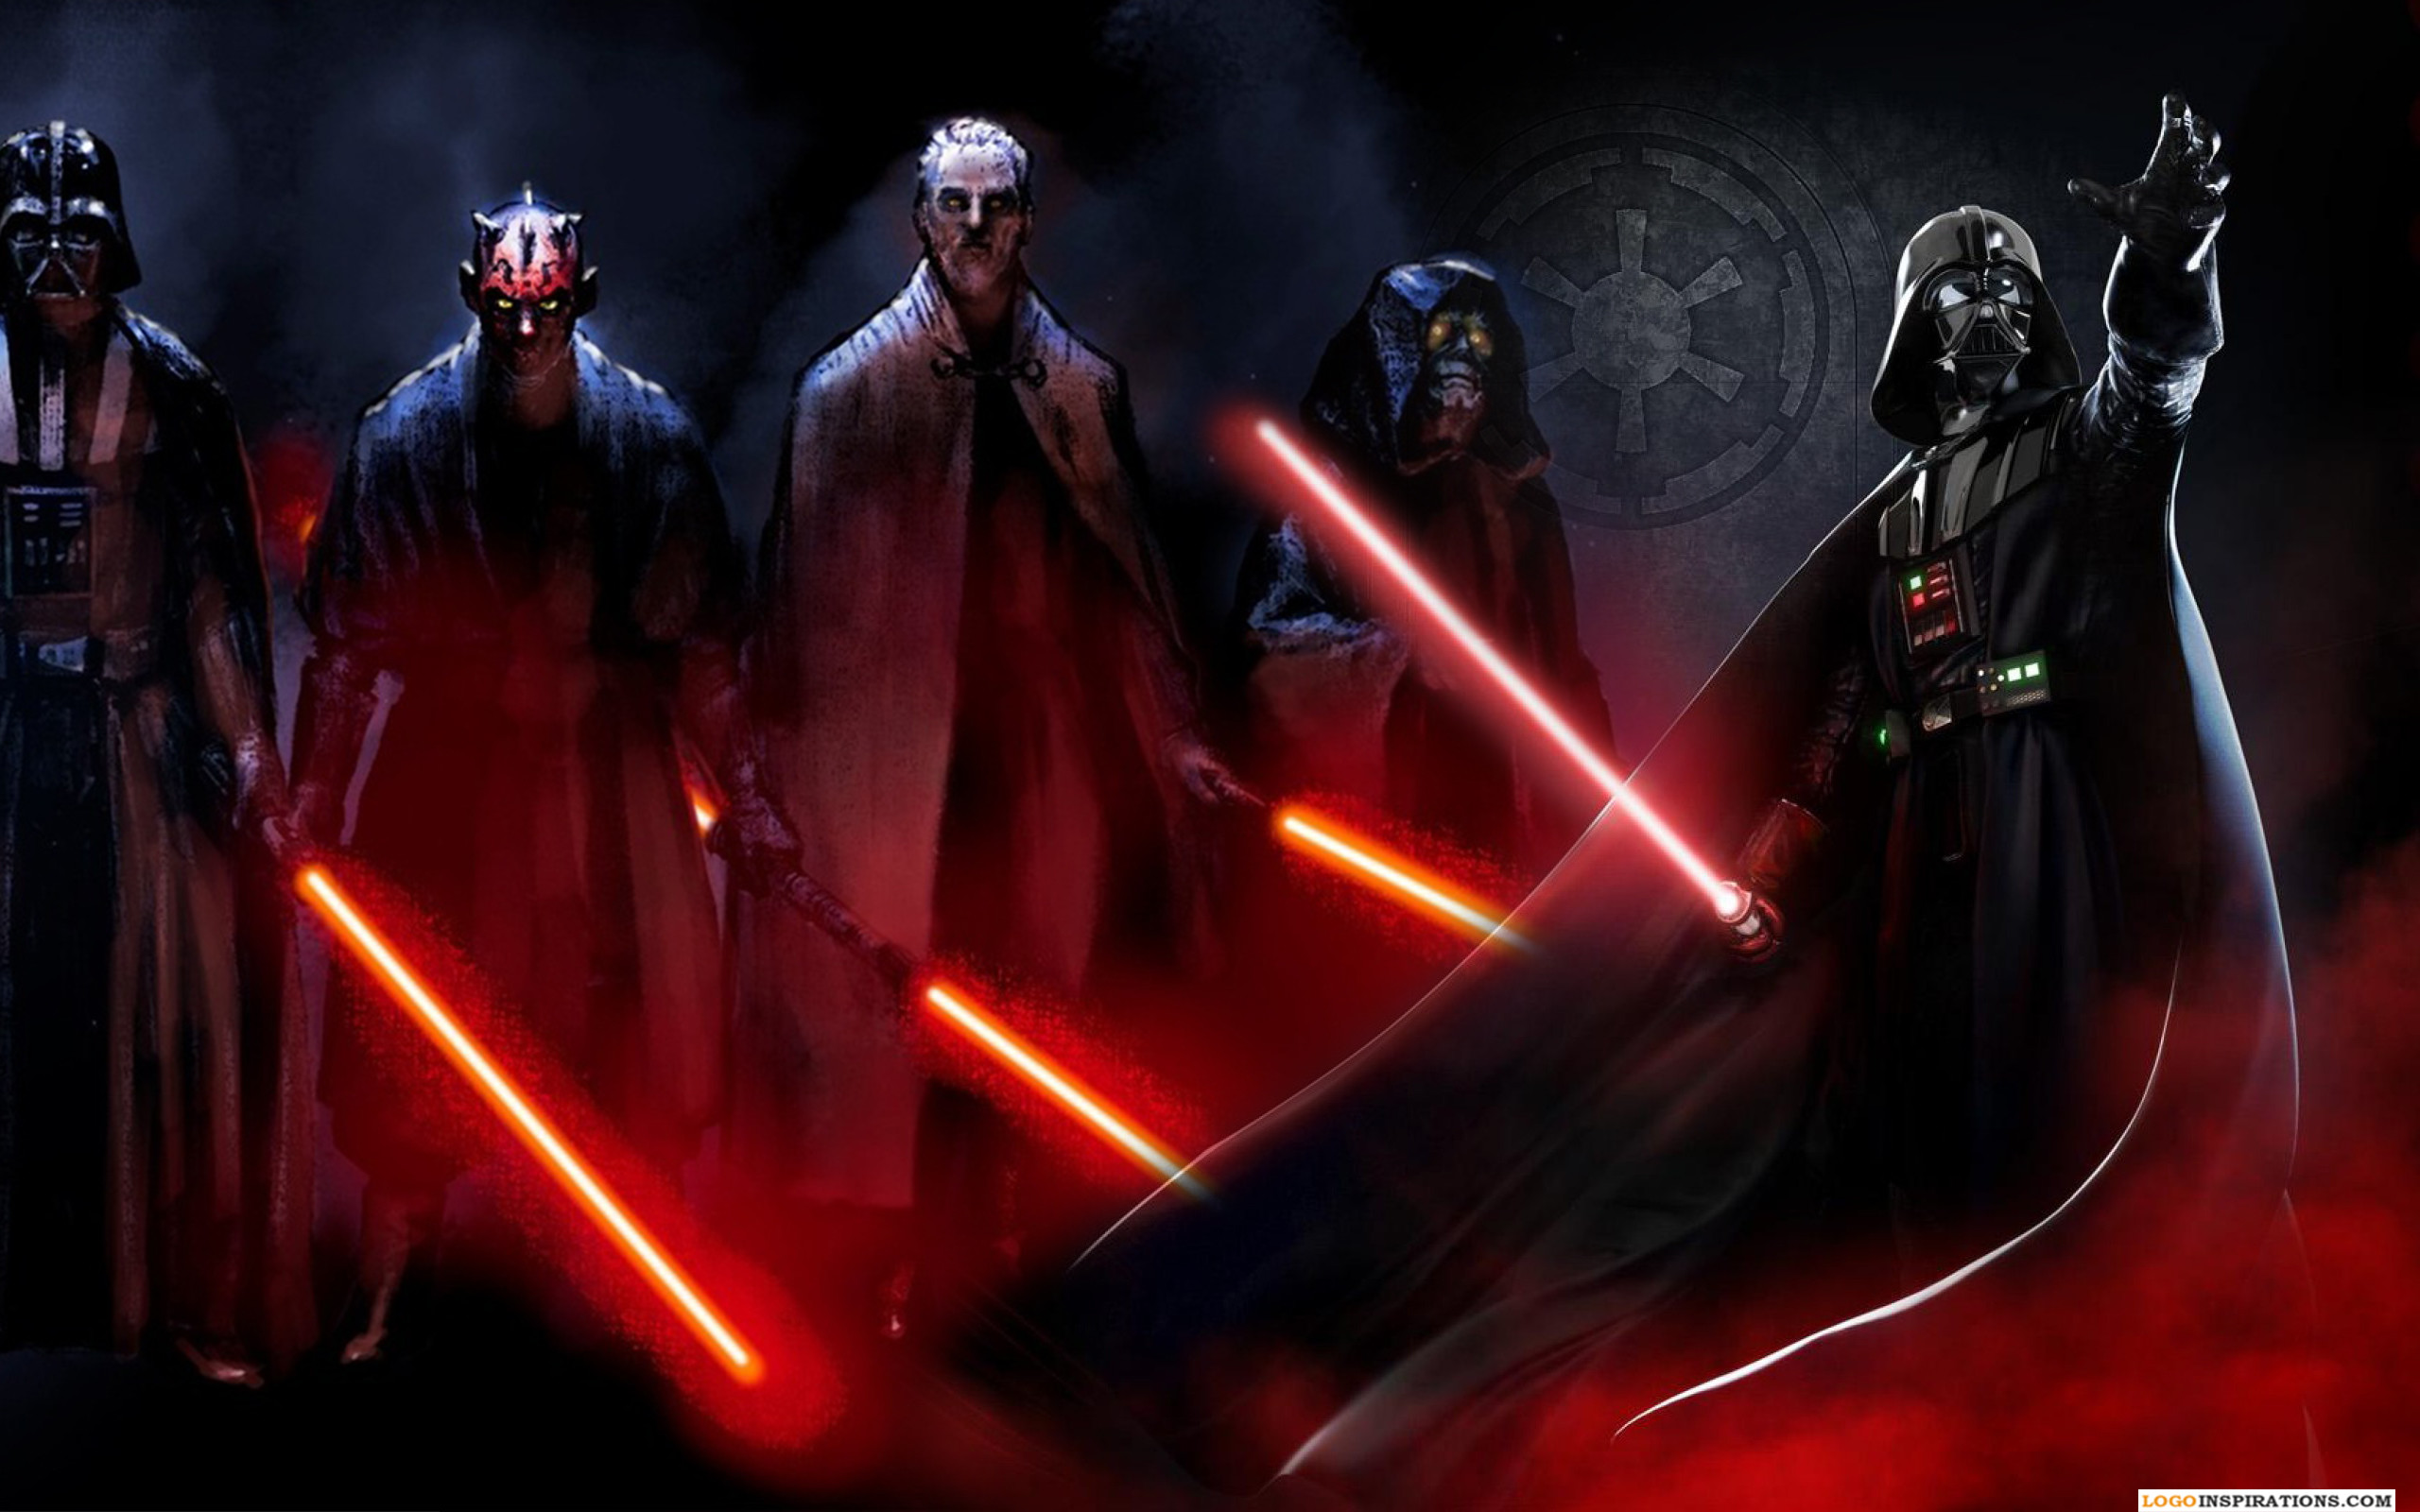 2560x1600 Pages Jedi Sith Star Wars 2560x1600 Wallpaper Teahub Io